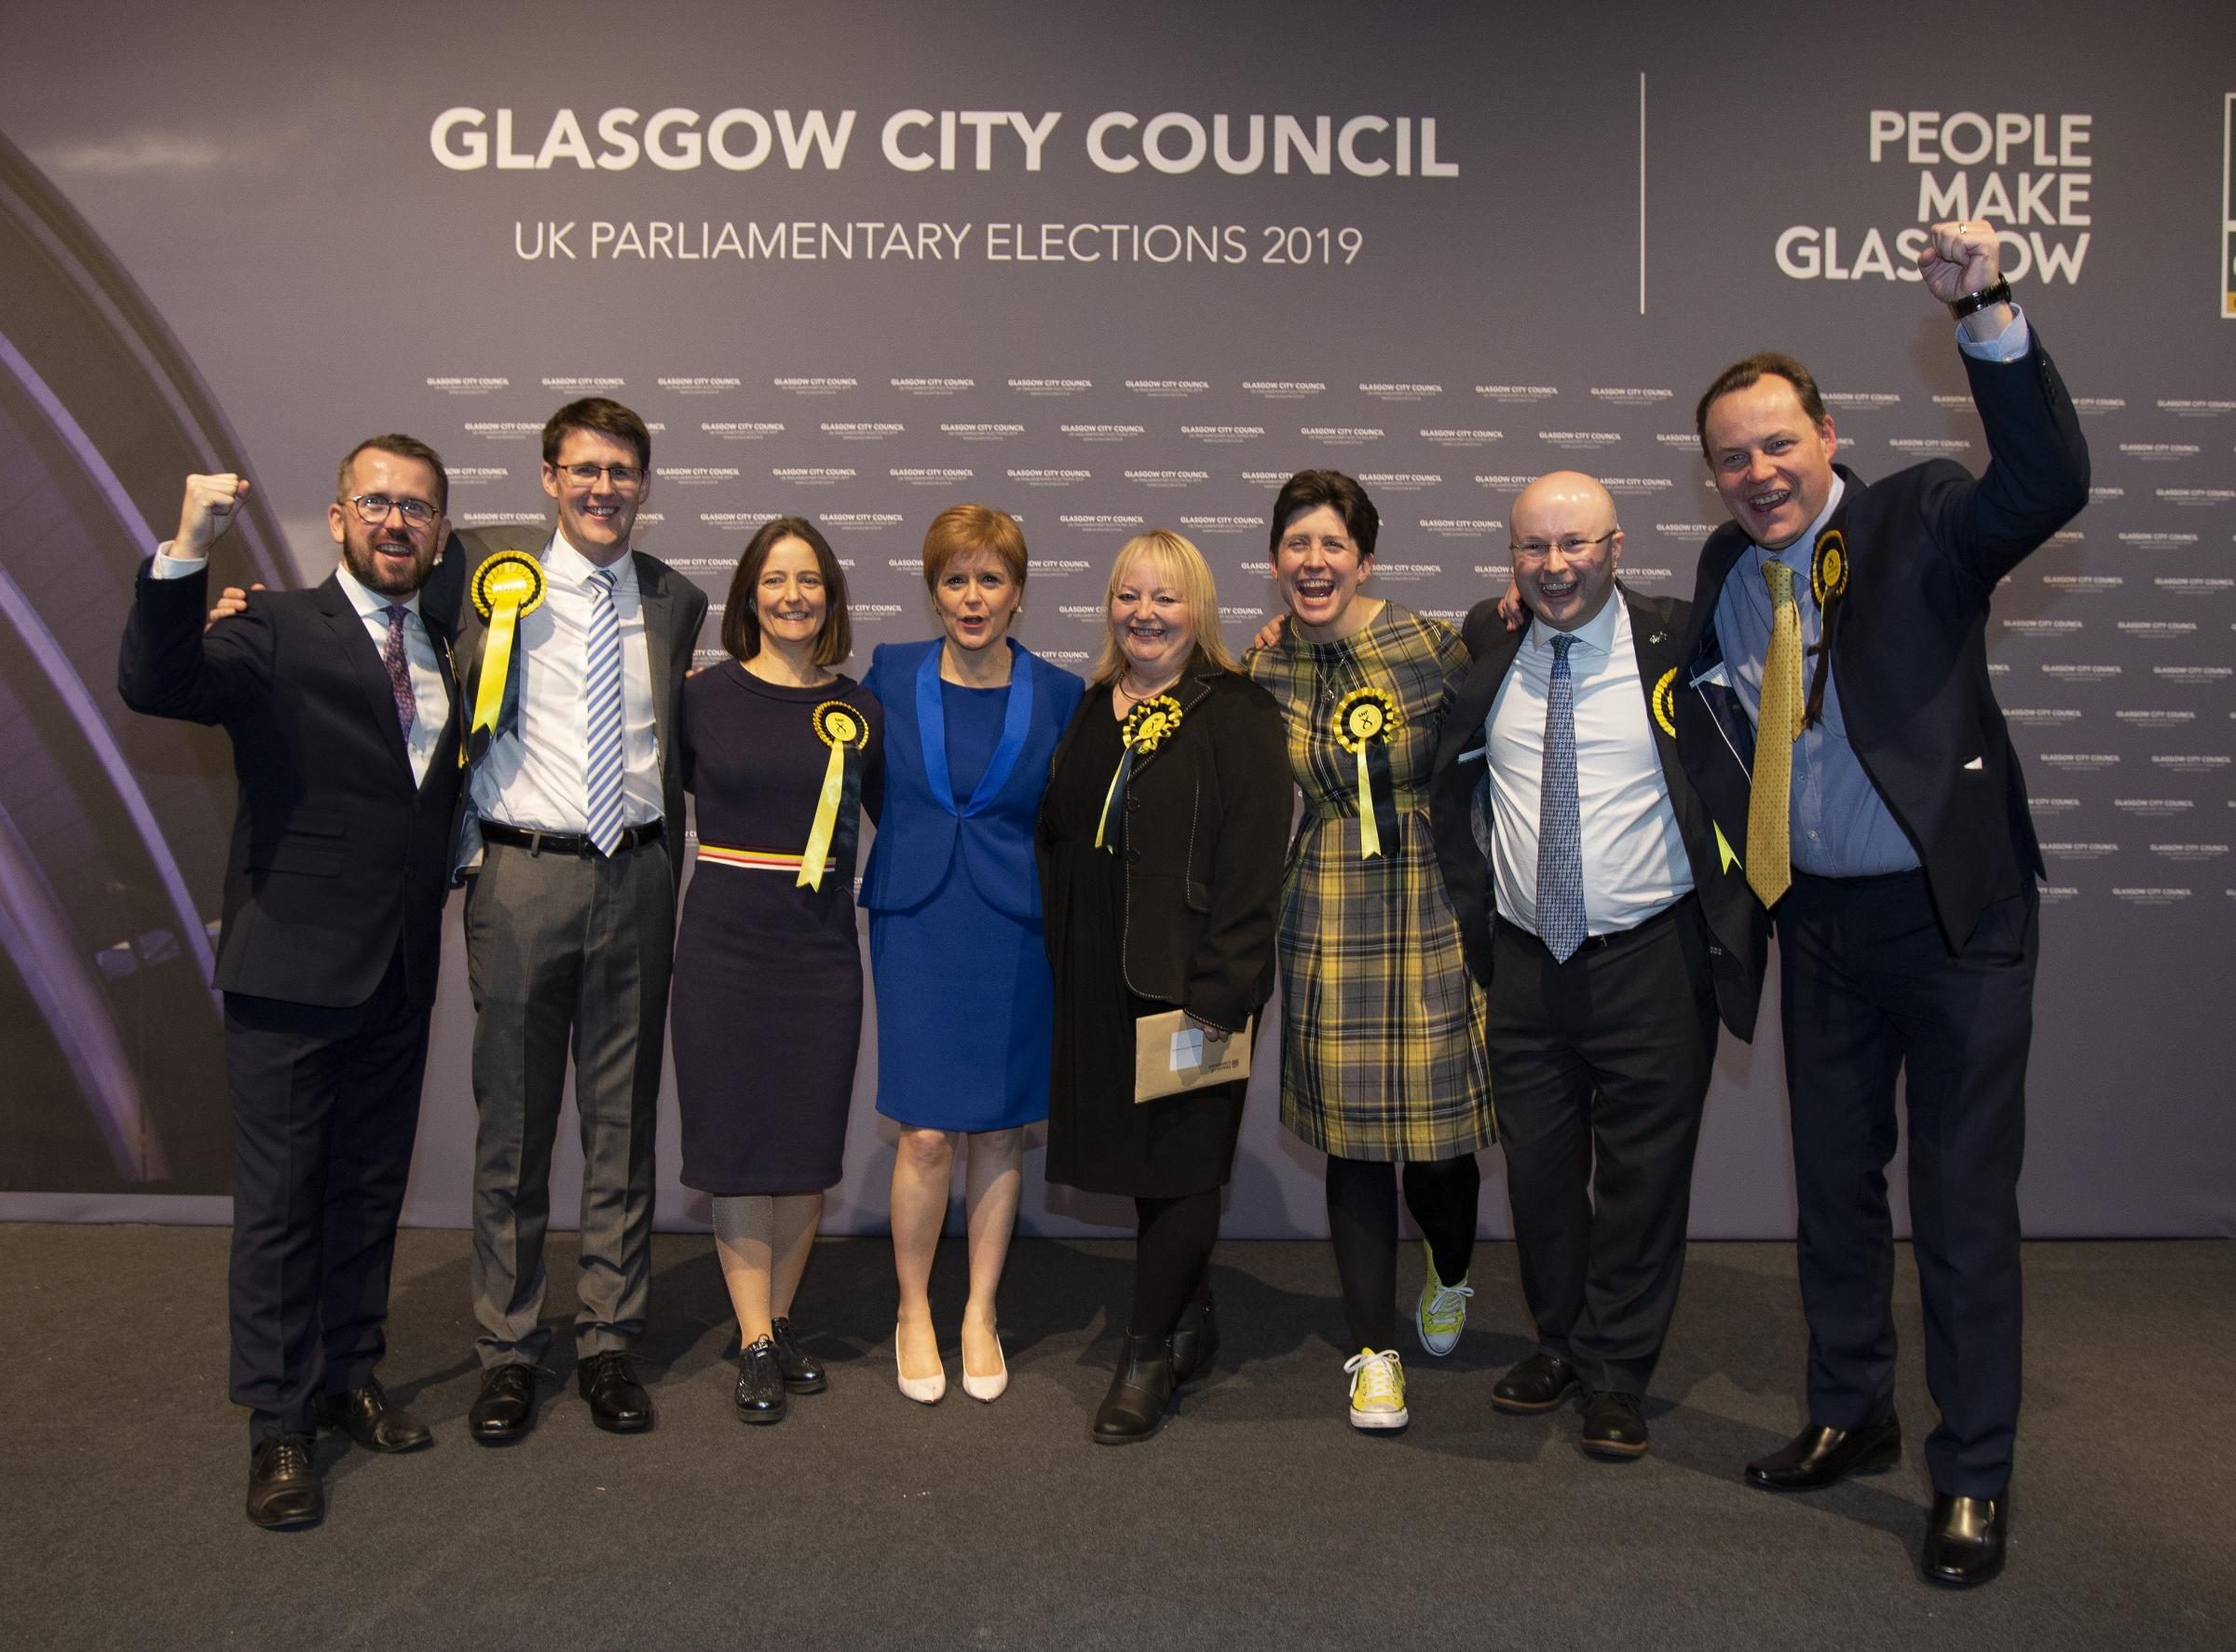 Glasgow could lose one MP at Westminster under controversial new plans